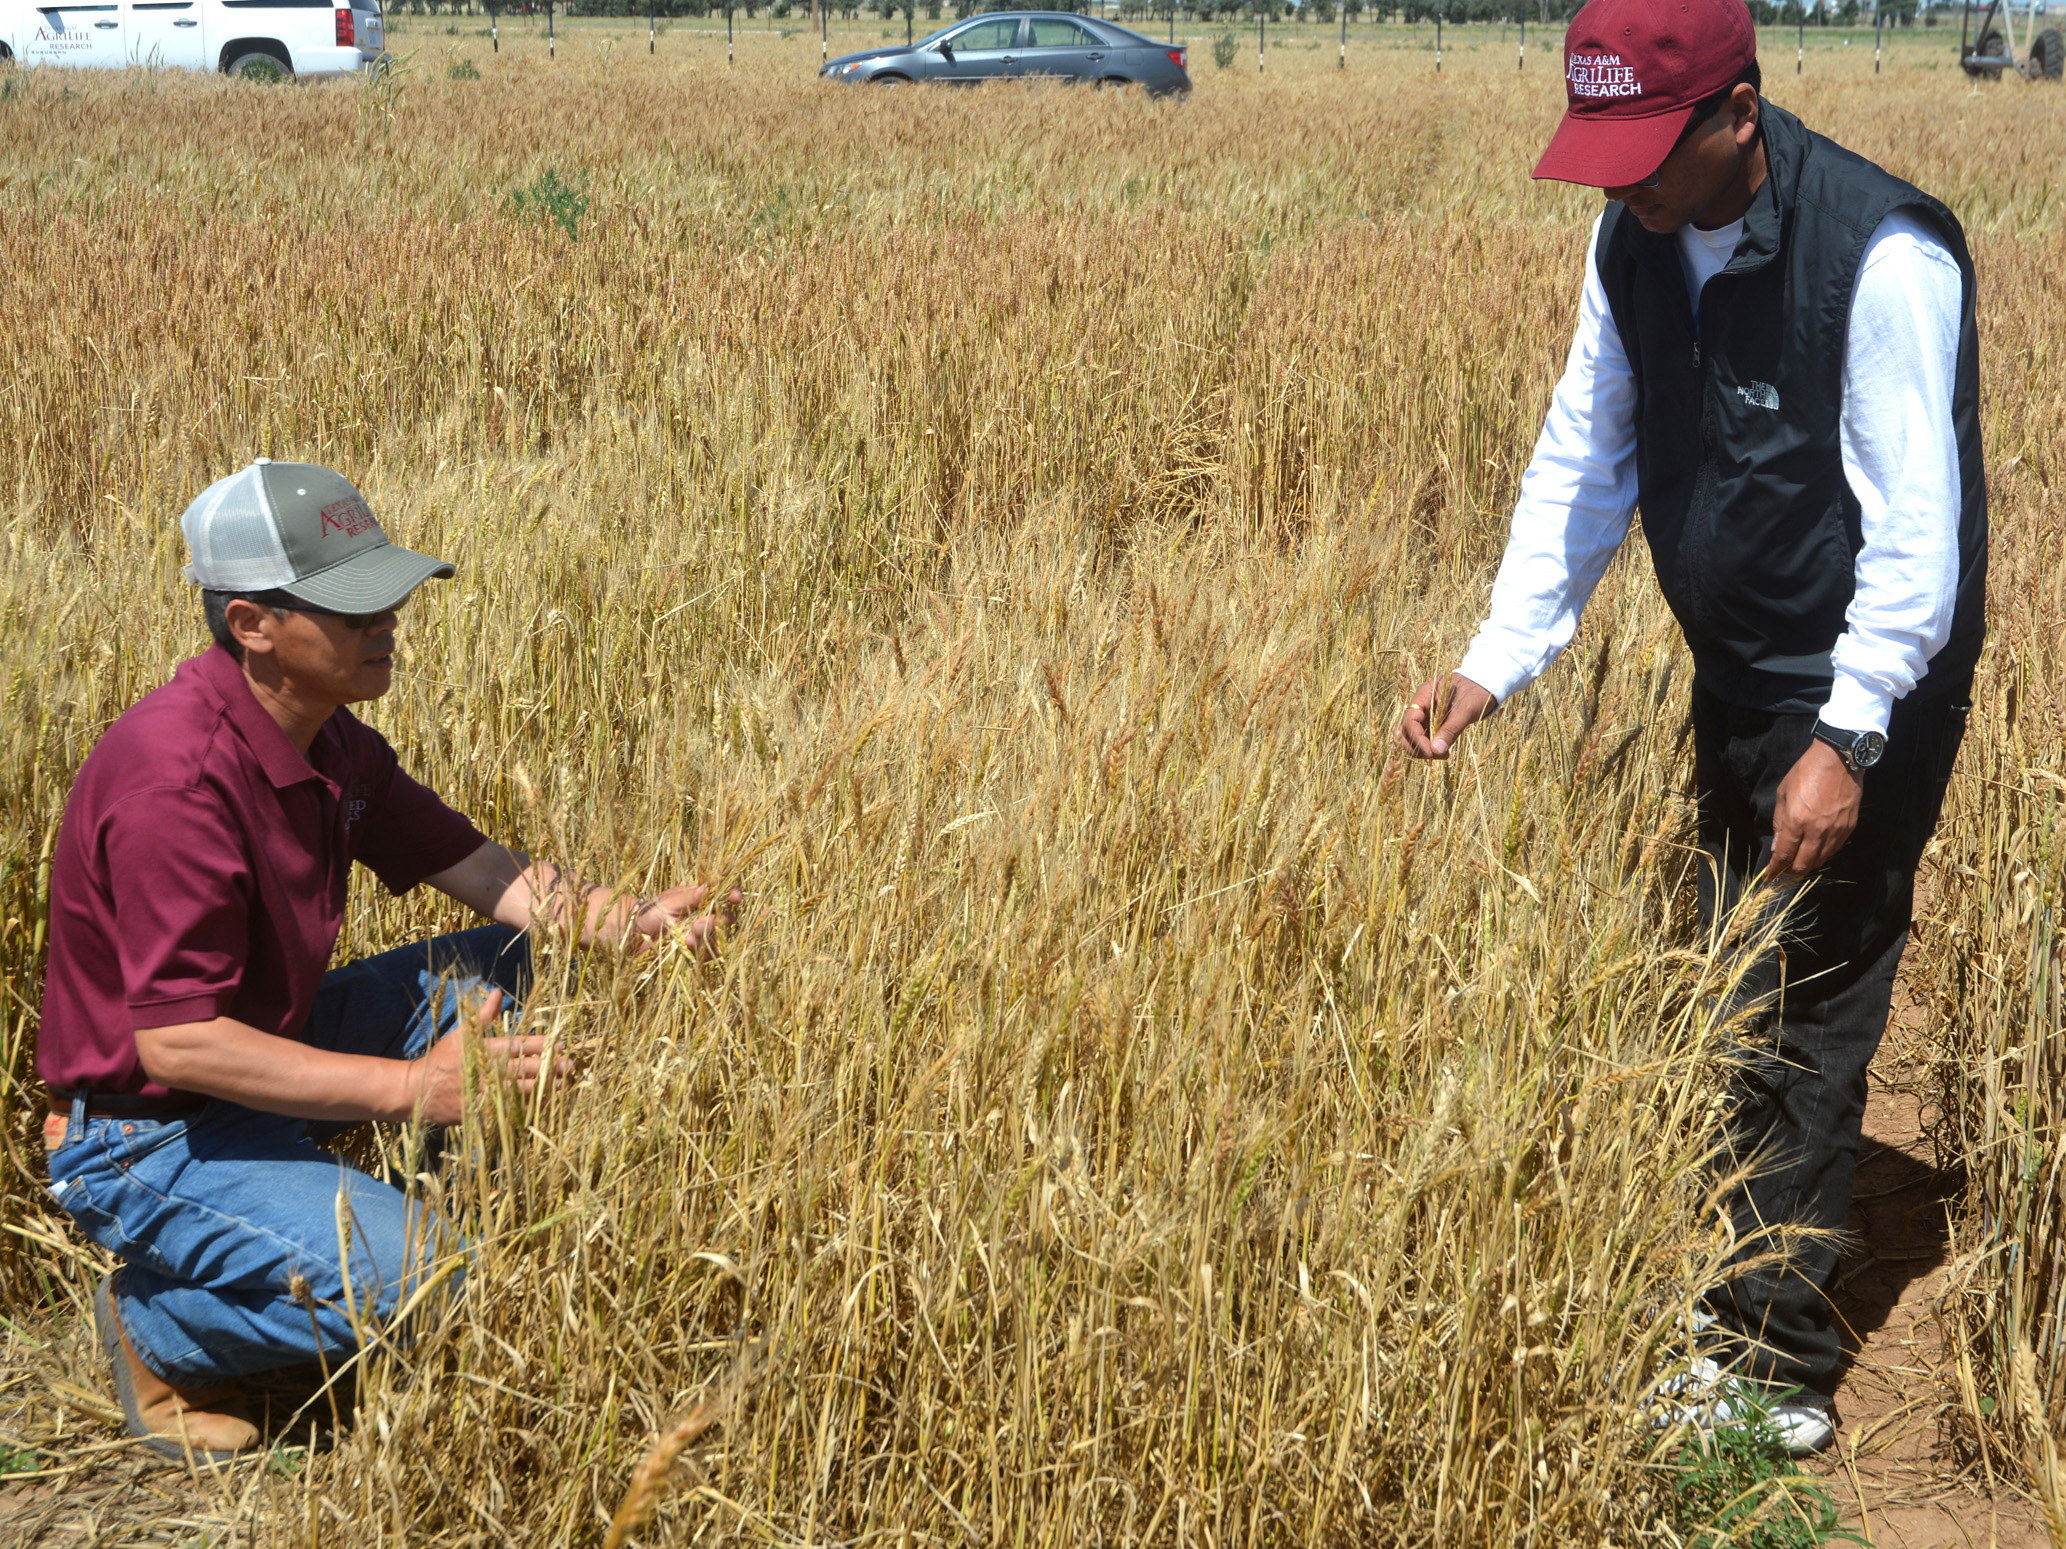 research papers on wheat production Abstract despite the routine collection of annual agricultural surveys and significant advances in gis and remote sensing products, little econometric research has integrated these data sources in additionally, less than 1% of all wheat production takes place outside the four regions studied in this paper.